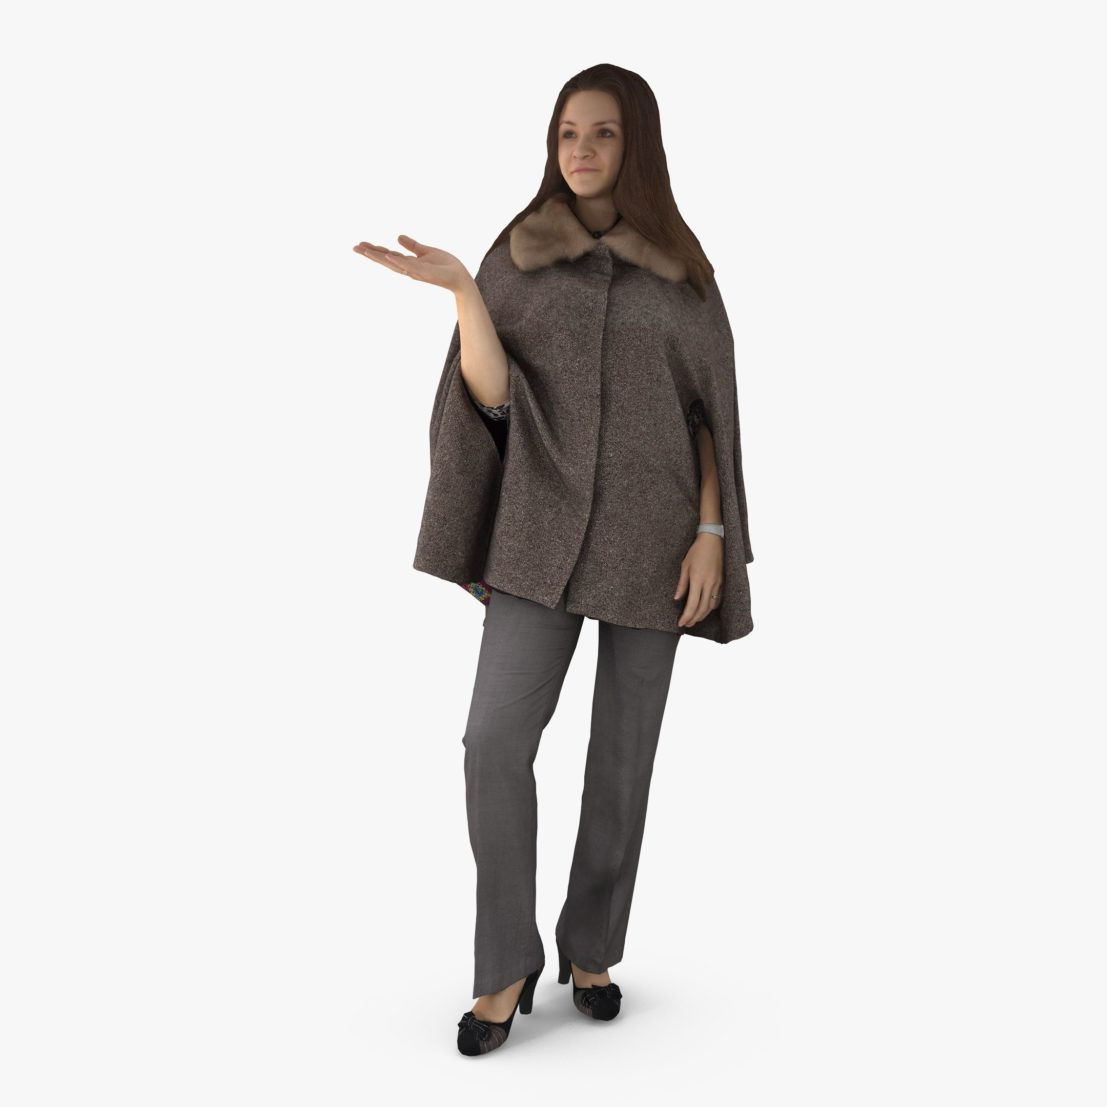 Woman Poncho Dress 3D Model | 3DTree Scanning Studio